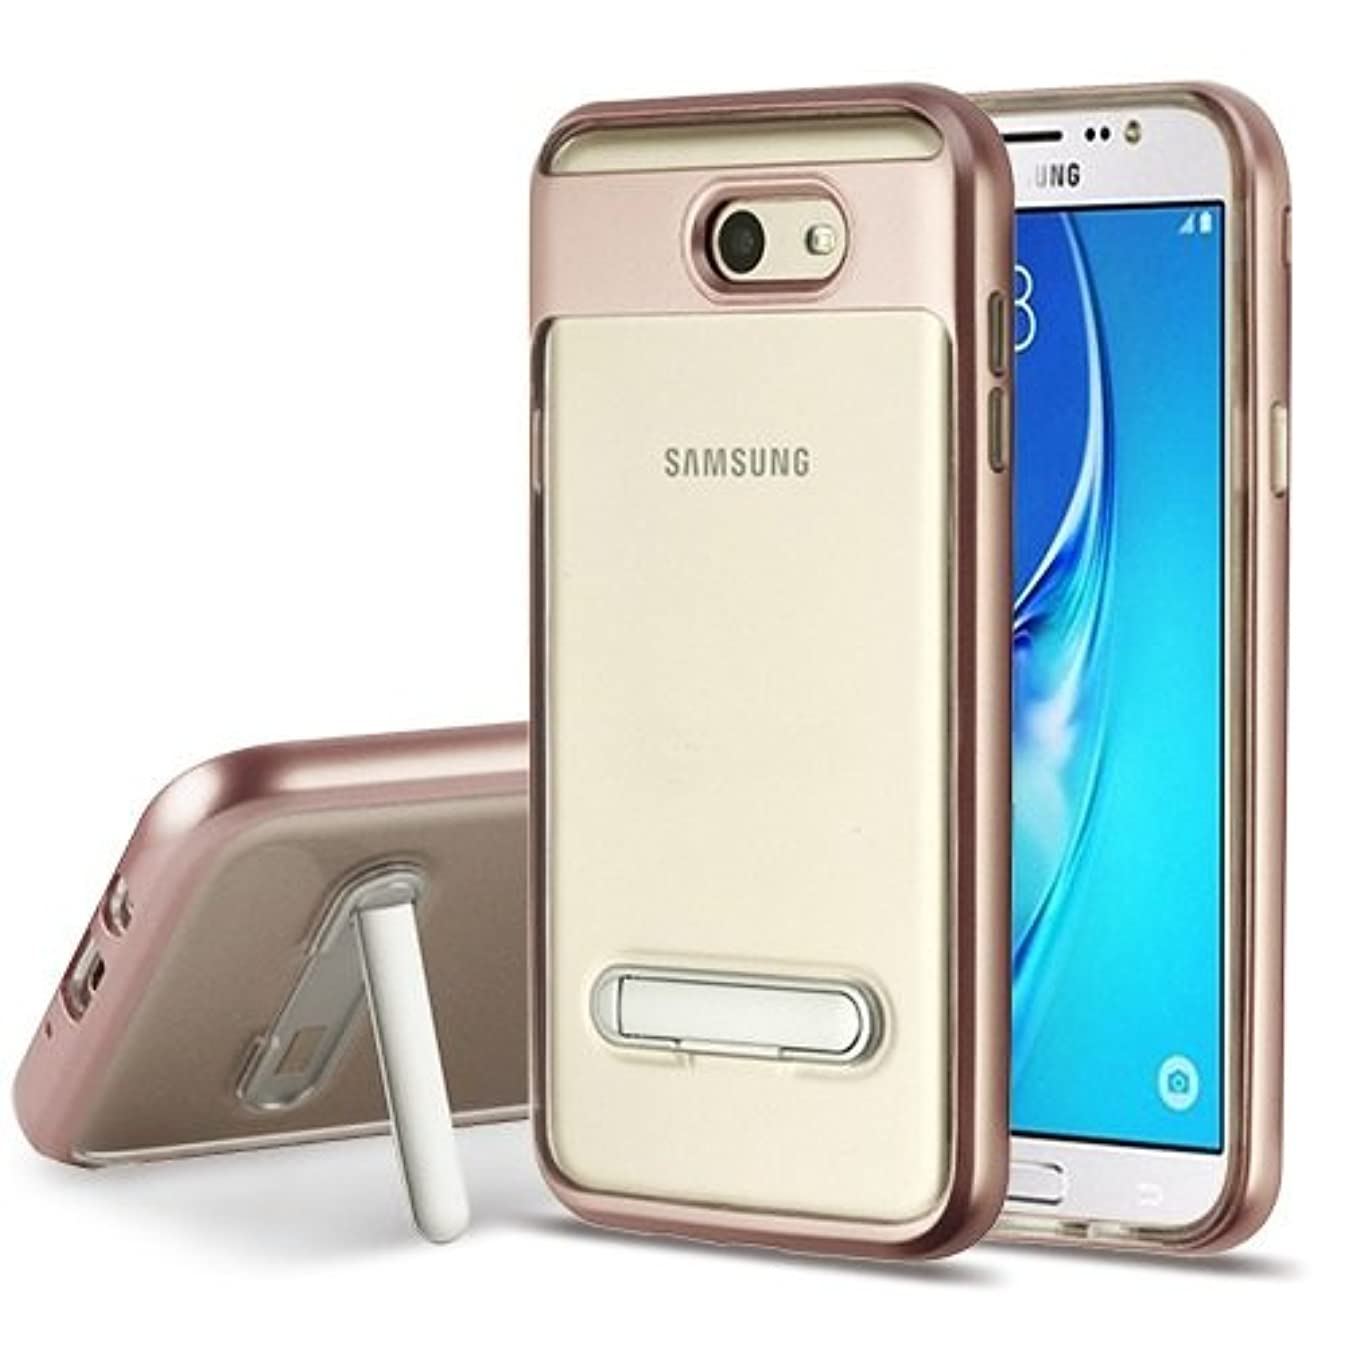 Phonelicious Slim Stand Series Compatible for SAMSUNG GALAXY J7 2017 / J7V / J7 SKY PRO / J7 PERX [Lightweight][Shock Proof] Protector Cover TPU + Screen Protector (ROSEGOLD/CLEAR TRANSPARENT STAND)